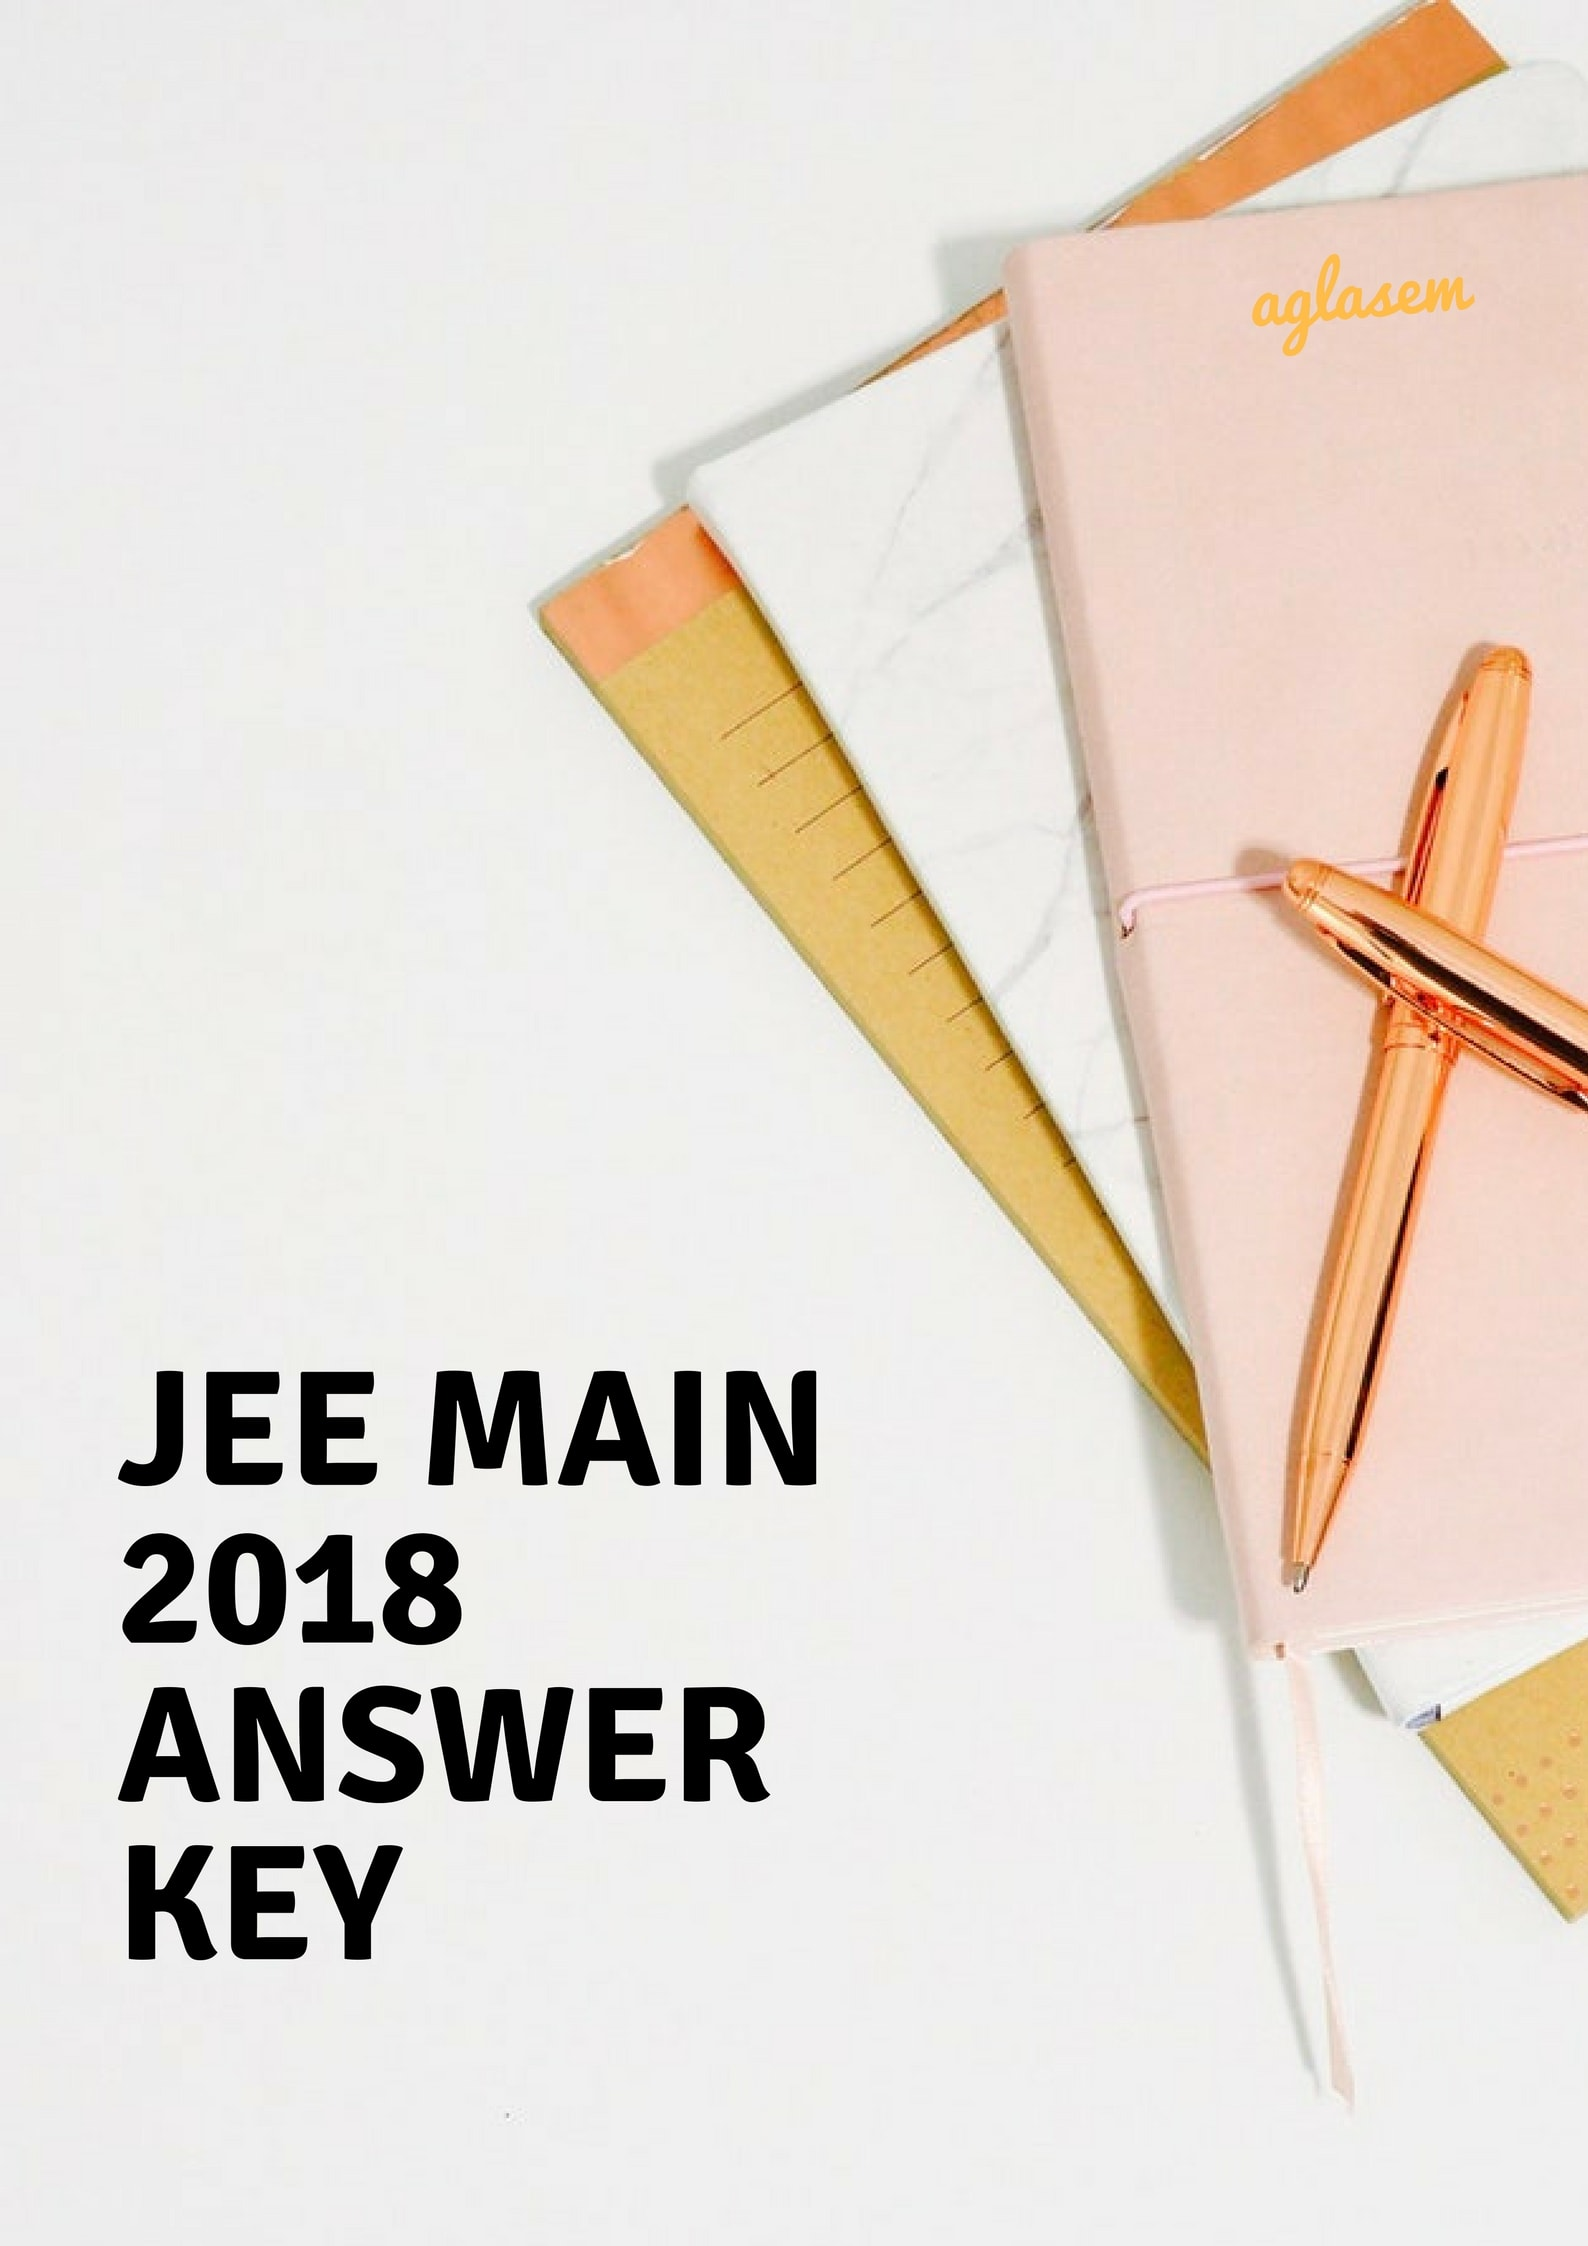 JEE 2018 Answer Key for Mains Exam and Question Paper